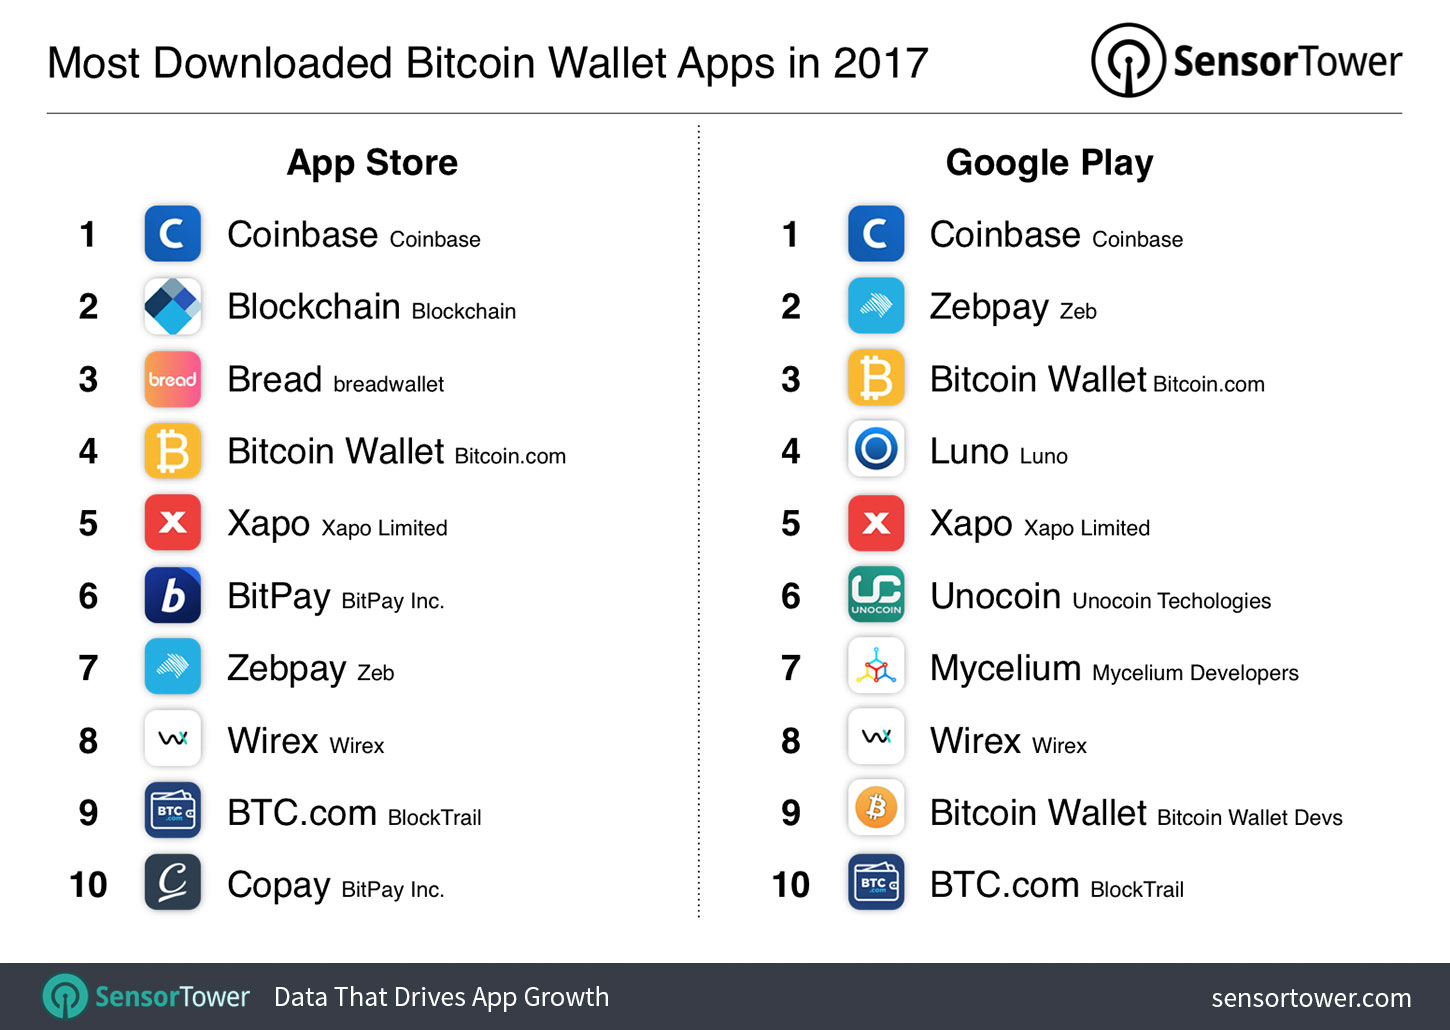 Top 10 bitcoin wallet apps by 2017 downloads to date